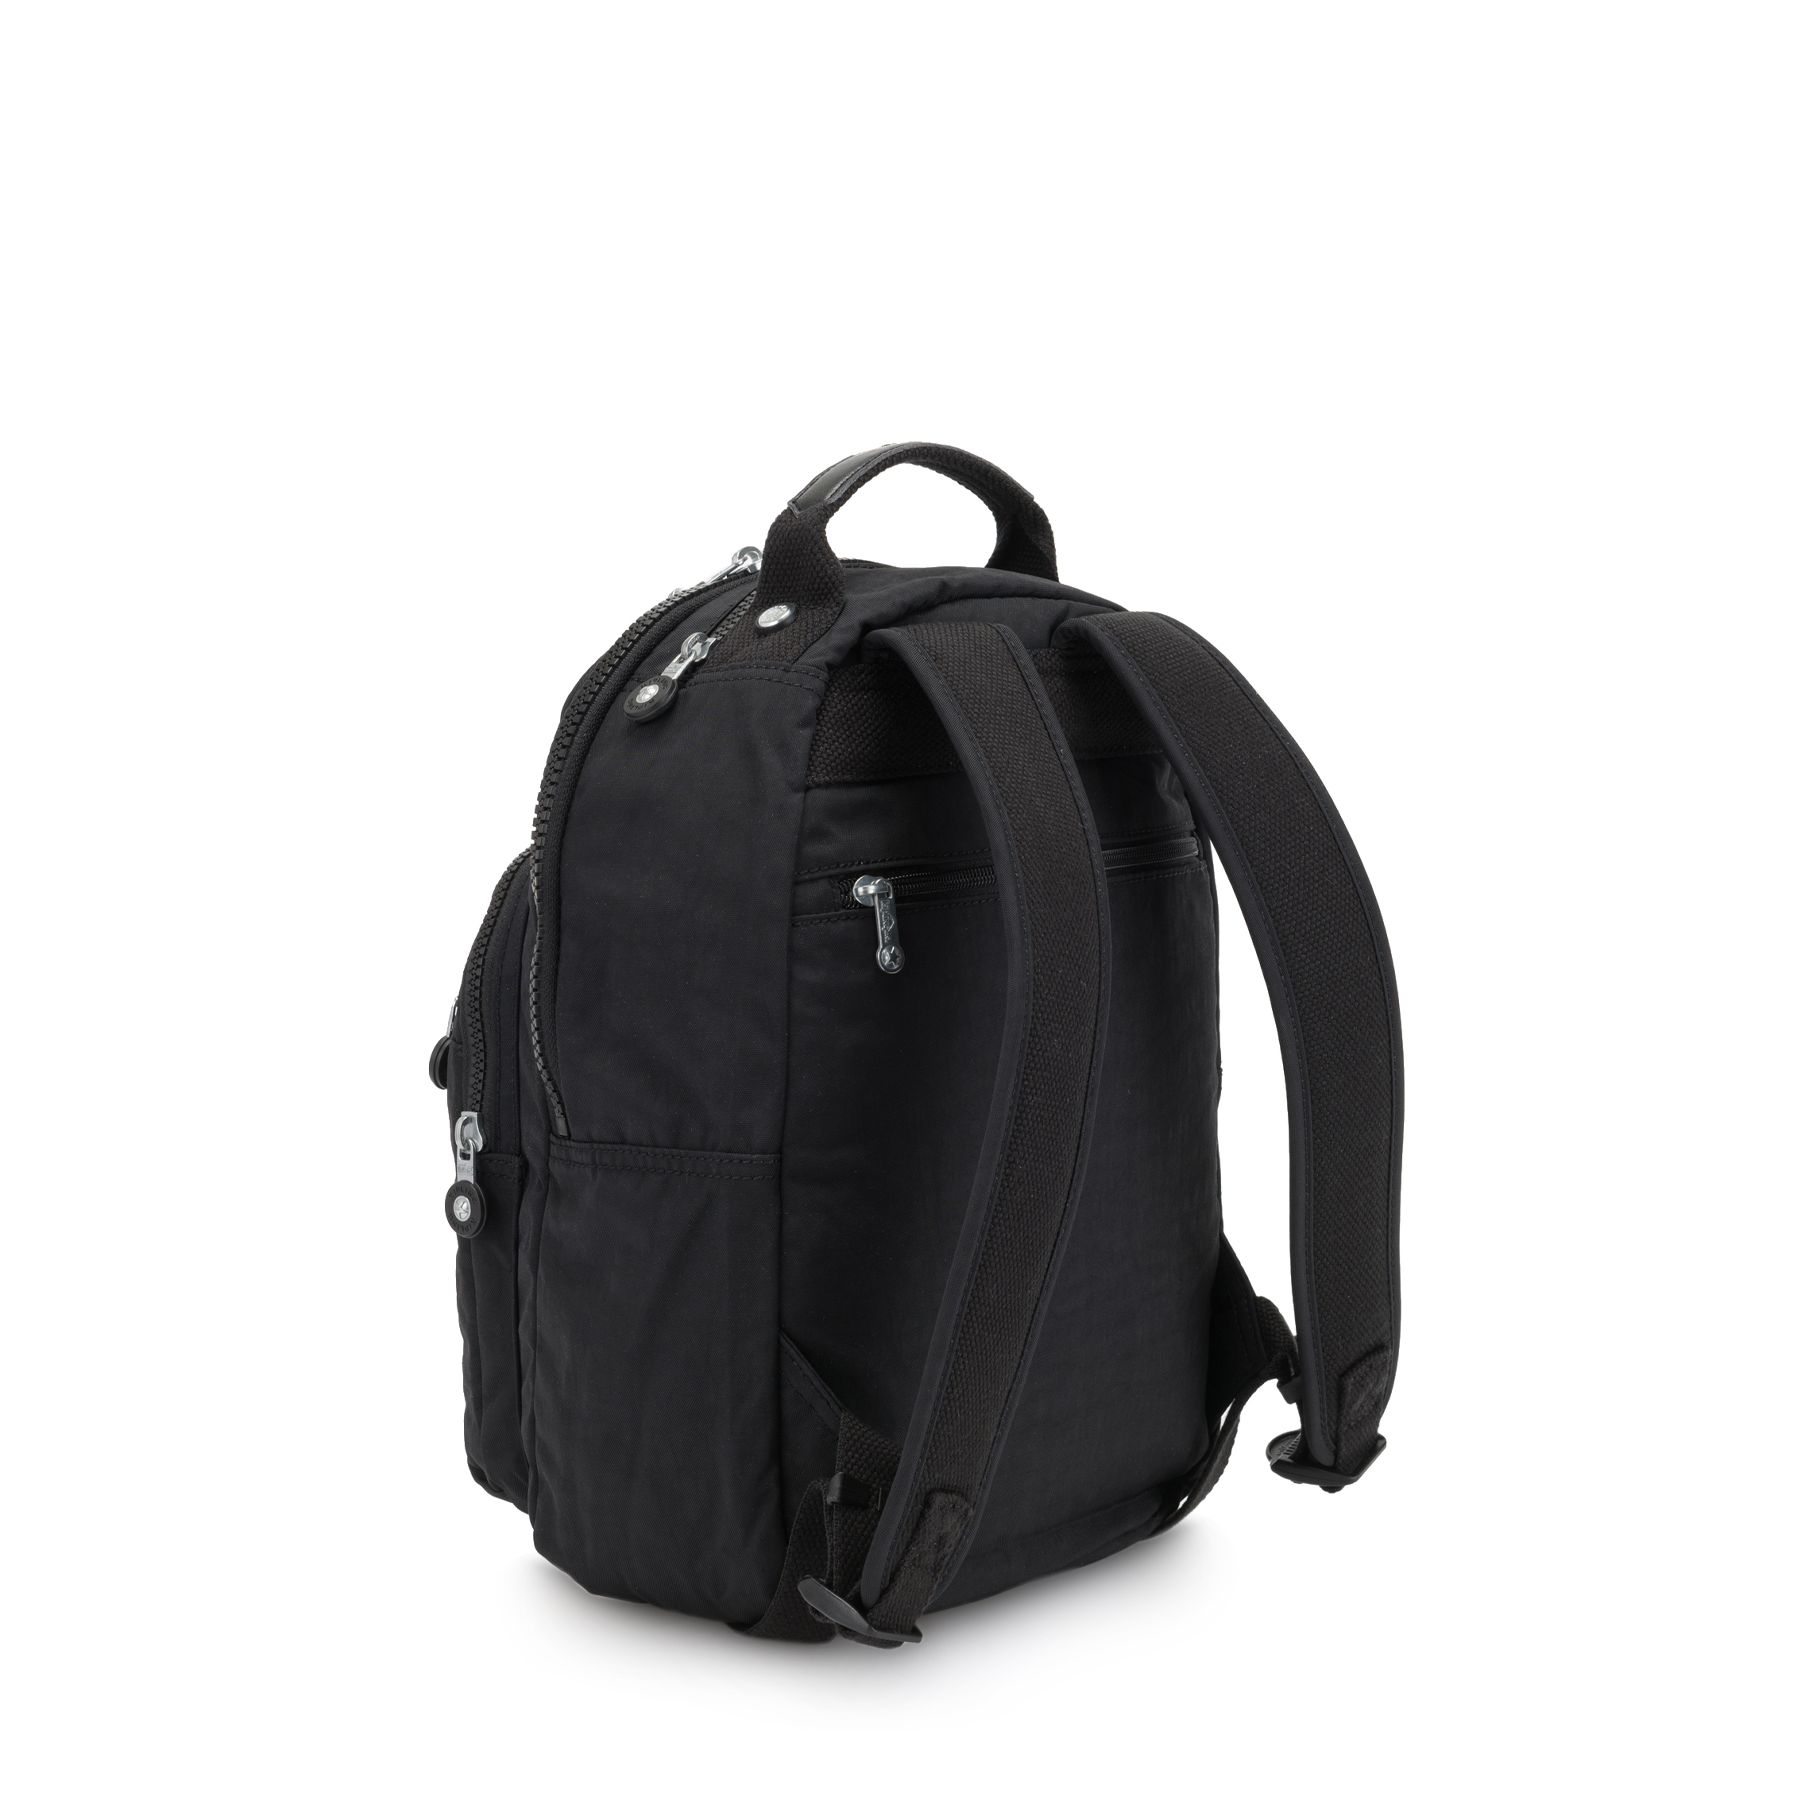 CLAS SEOUL S BACKPACKS by Kipling - Back view